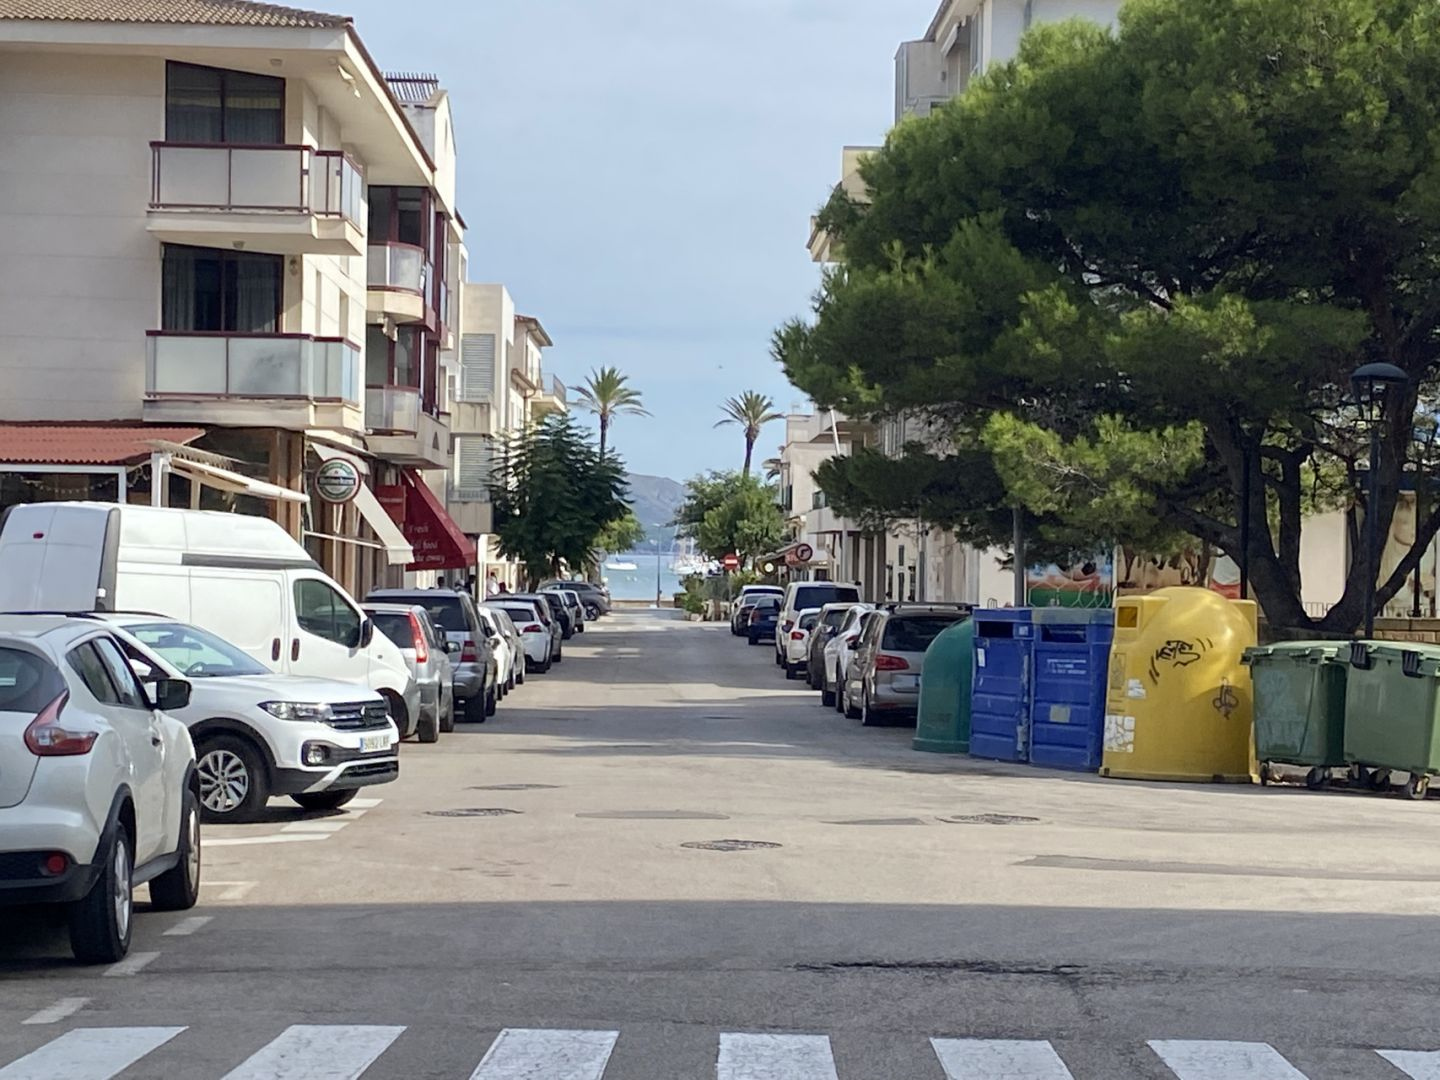 1 Bed Apartment for sale in Puerto Pollensa 14